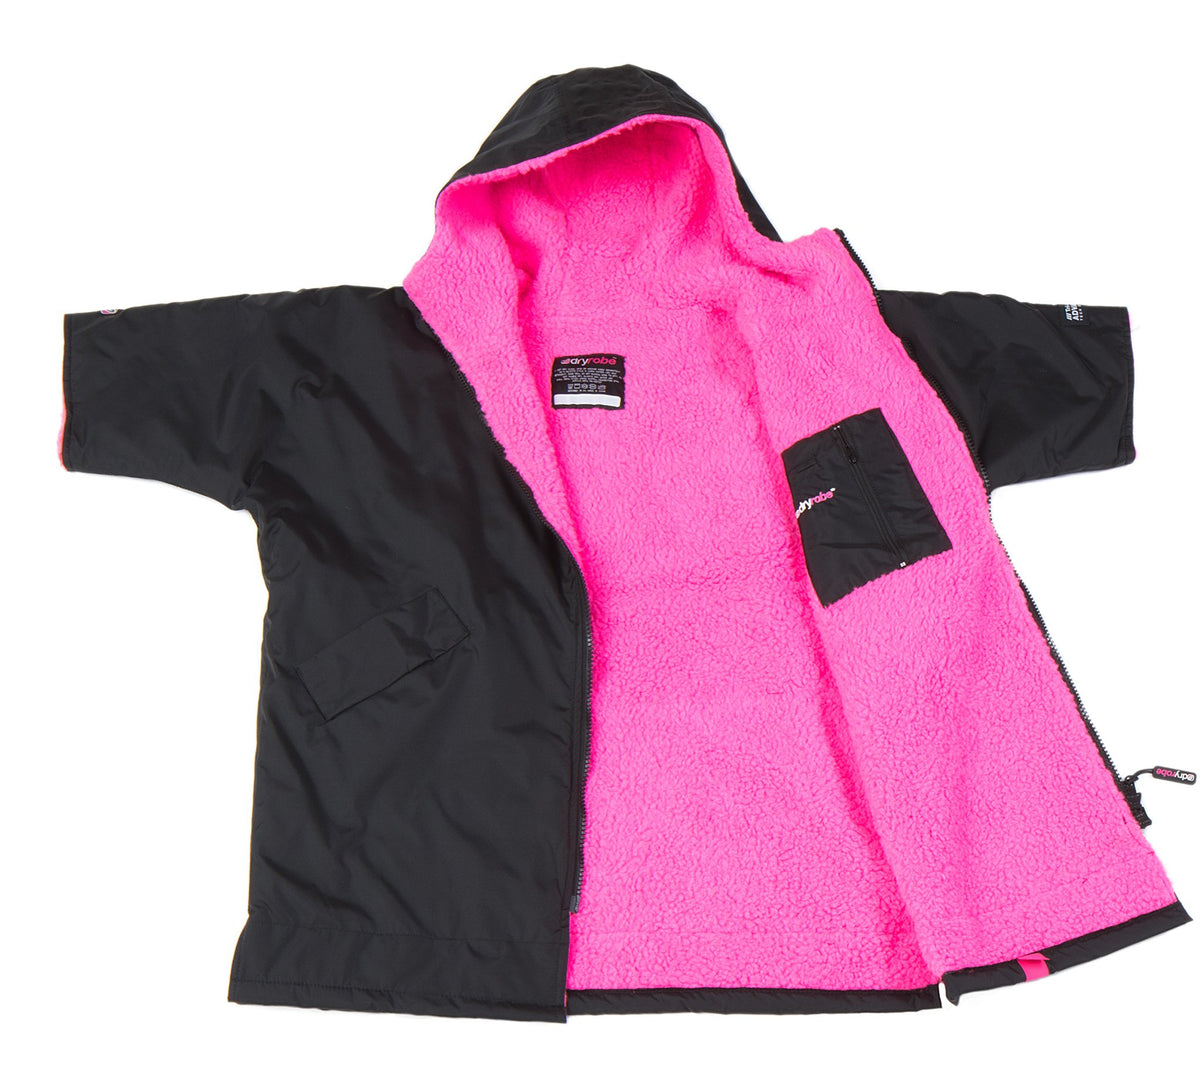 1|XS, Kids dryrobe Advance Short Sleeve Black Pink Open